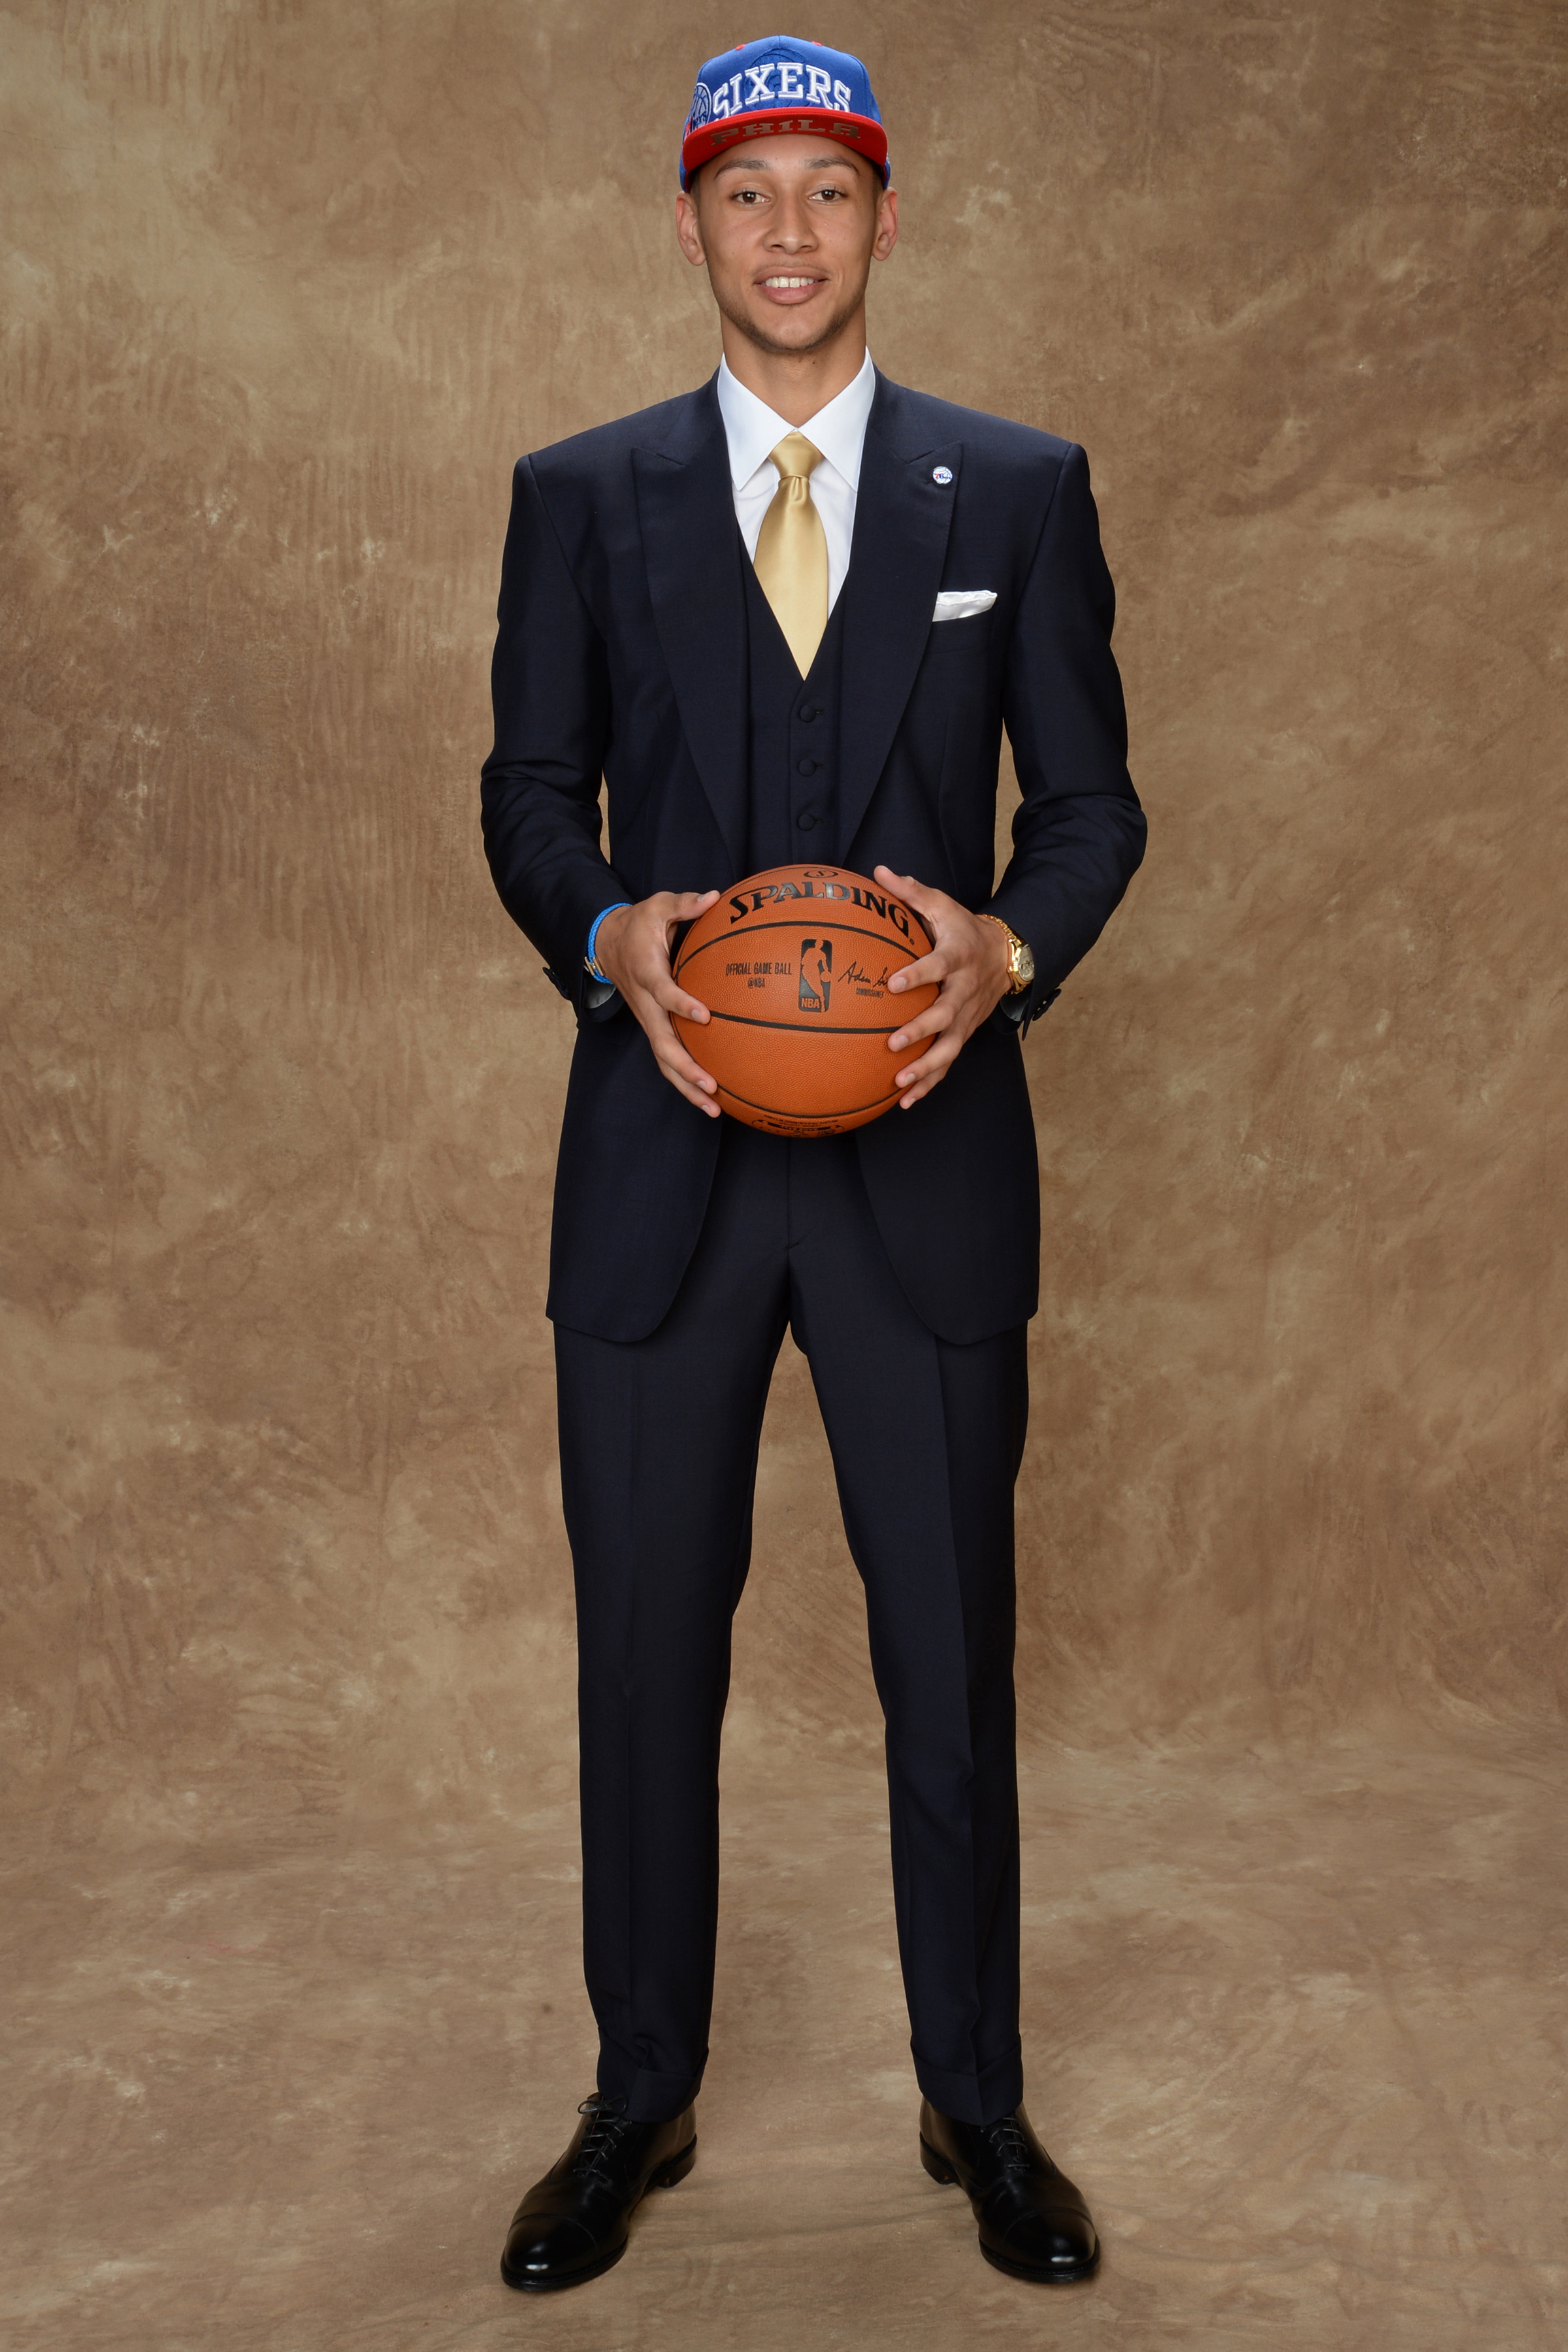 Ben Simmons was hailed as the number one pick in the draft, which was hardly diminished by his selection of a classic three piece suit.